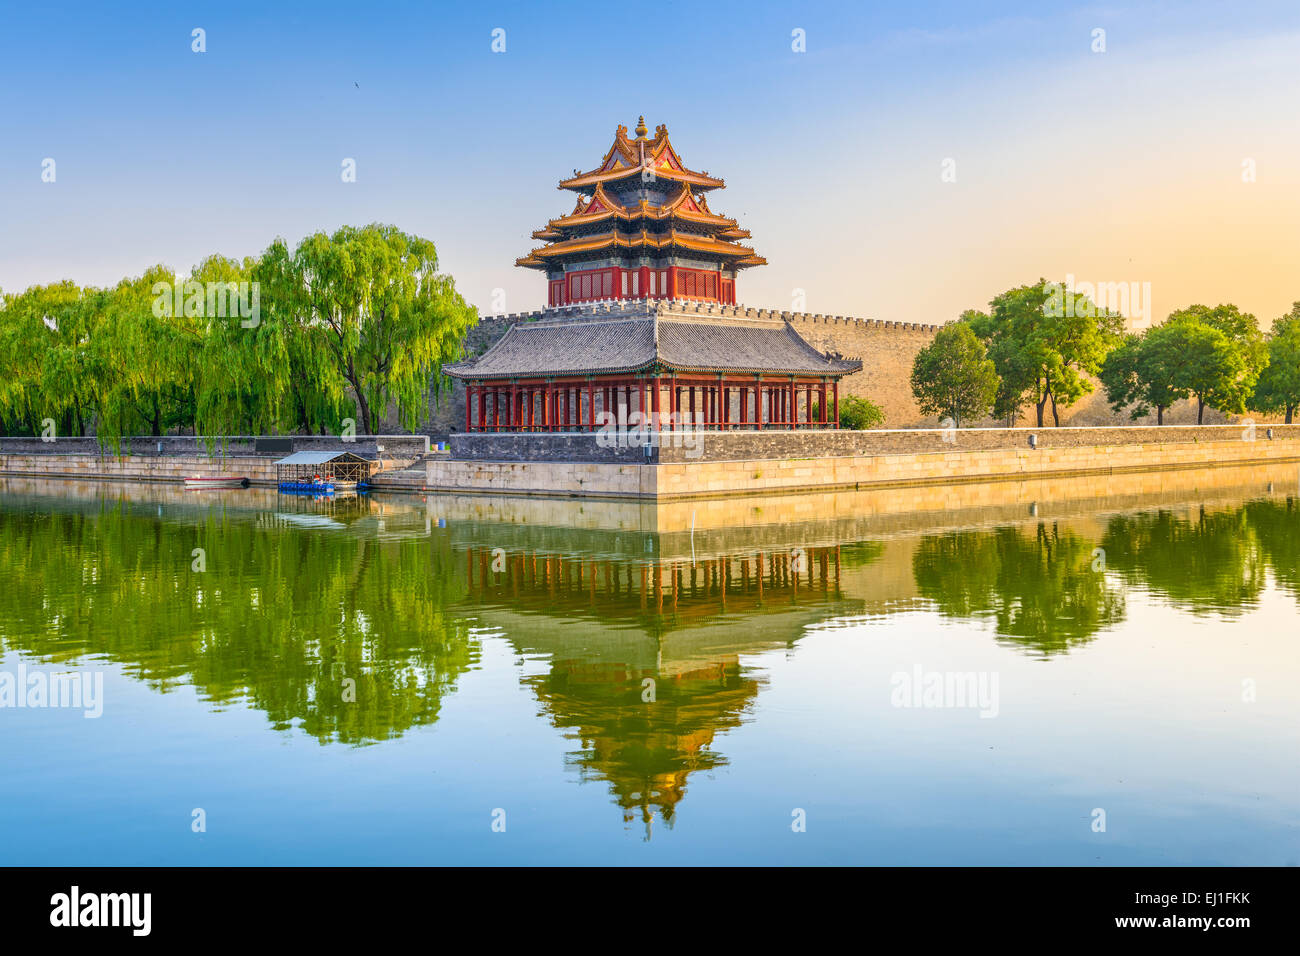 Beijing, China at the outer moat corner of the Forbidden City. - Stock Image